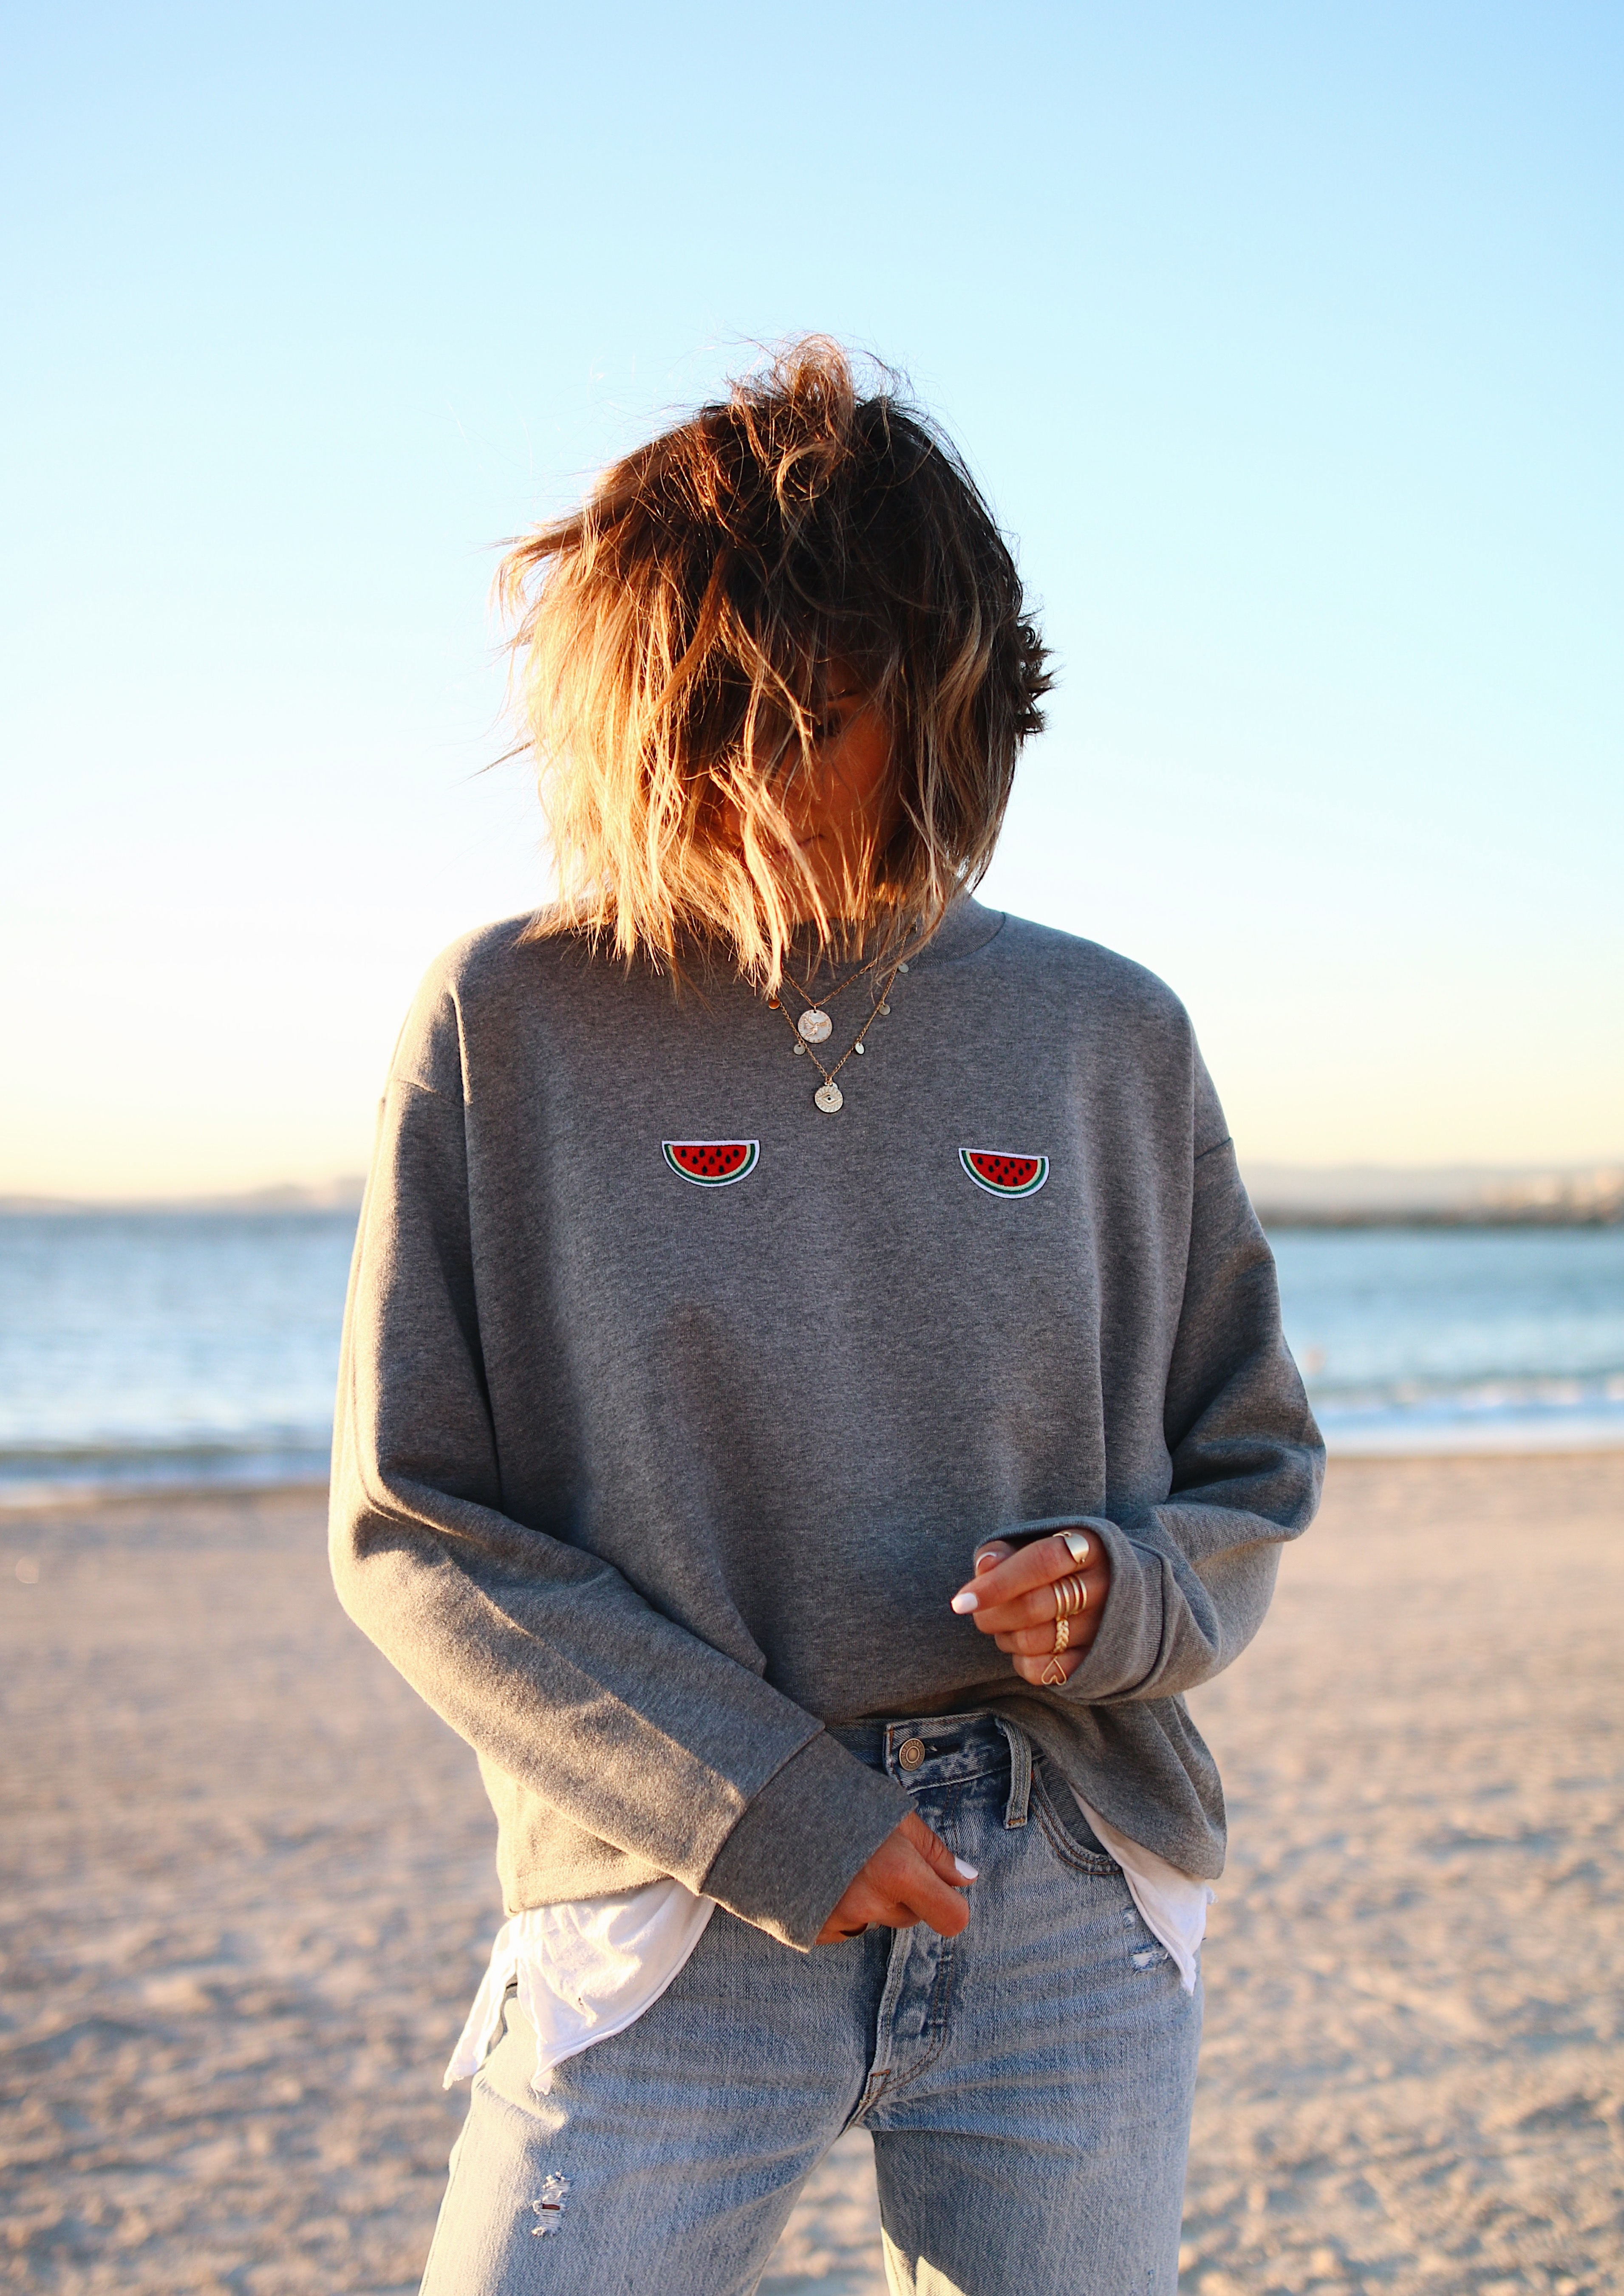 Sweat pasteque, watermelon sweater, graphic sweater, fun sweater, denim lover